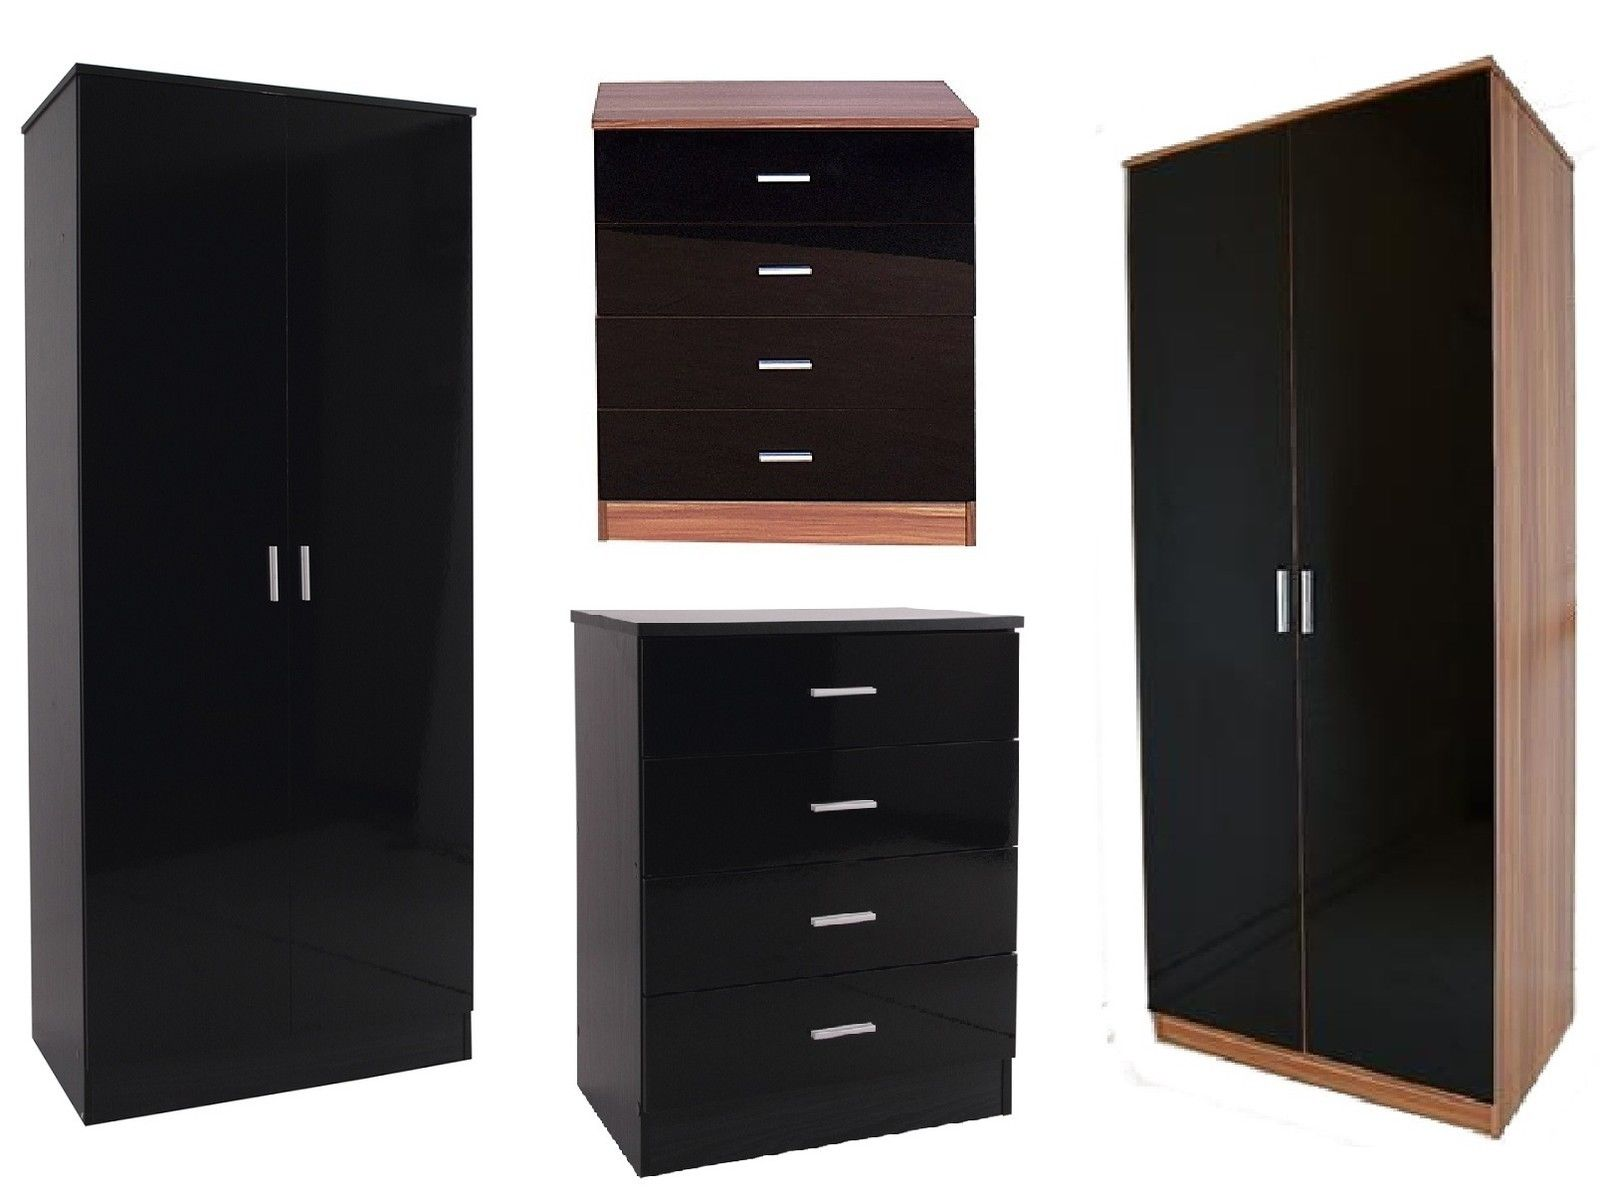 Details About Caspian Black High Gloss Bedroom Furniture Set Wardrobe Chest Of Drawers